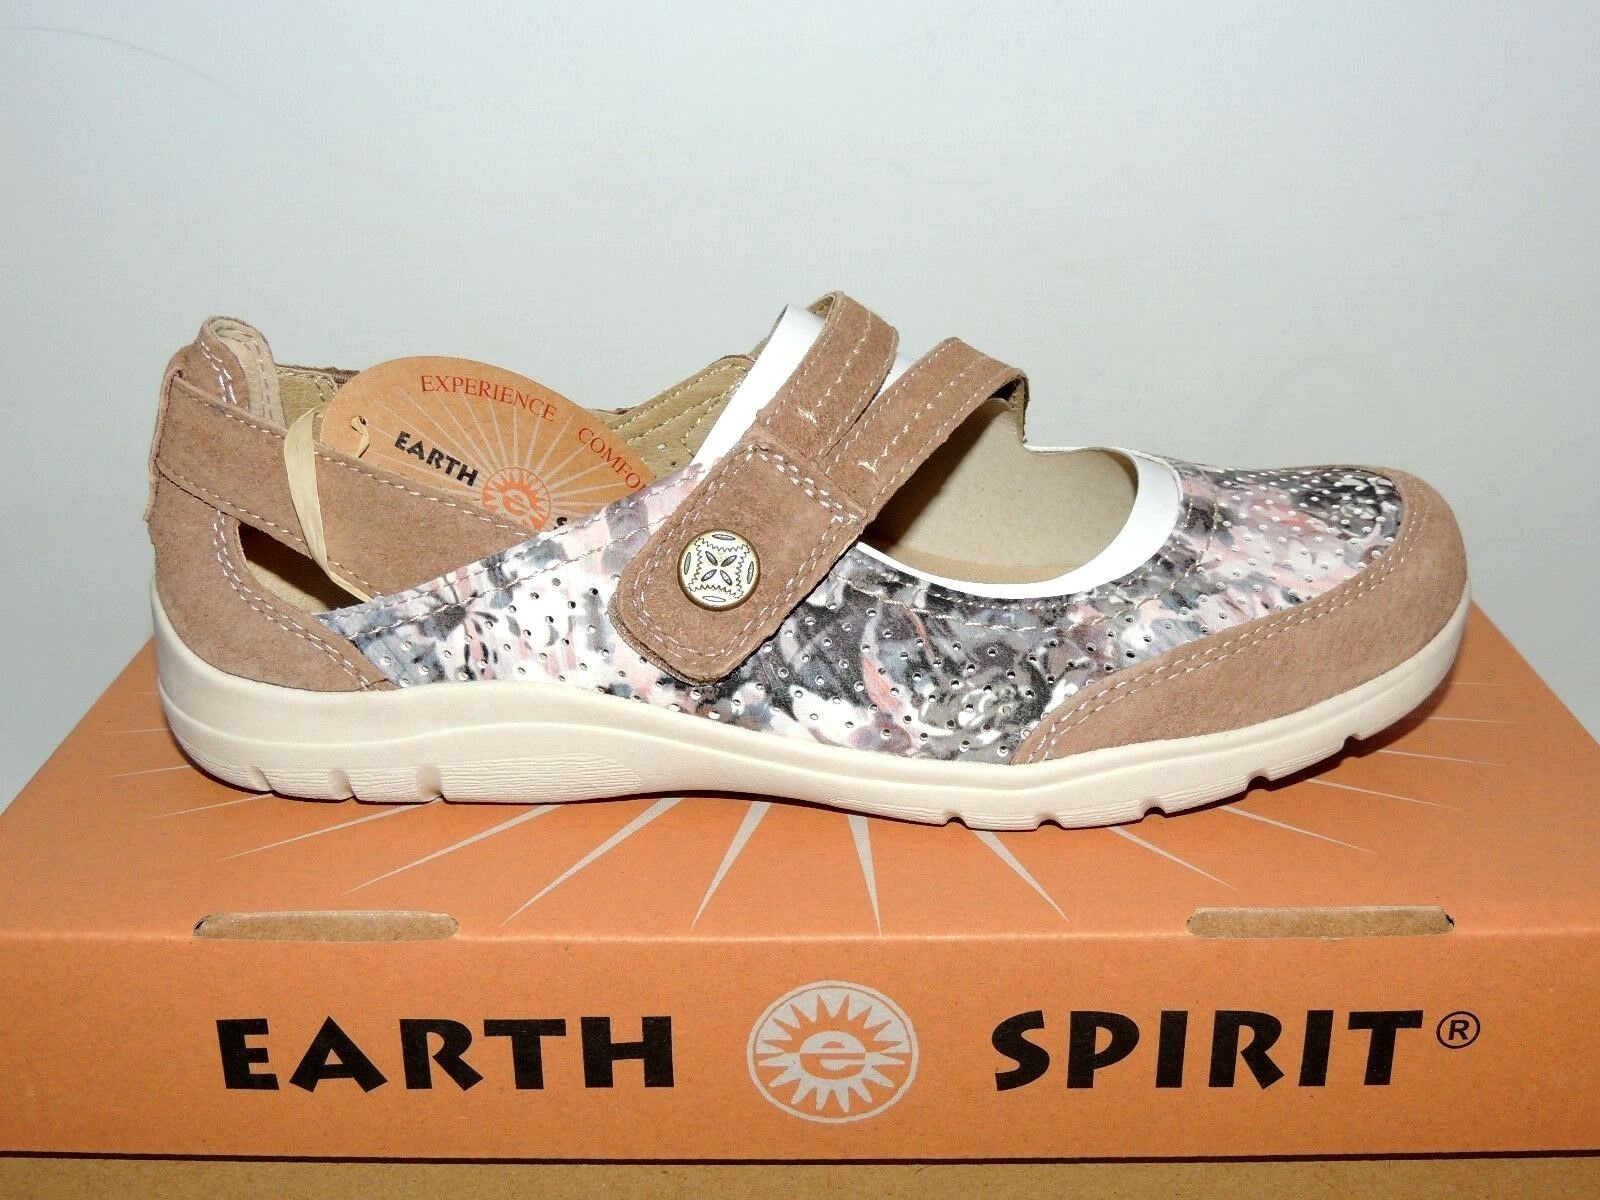 EARTH SPIRIT 'MARYLAND' MOLASSES FLORAL SHOES WITH RIP TAPE FASTENING. BNIB